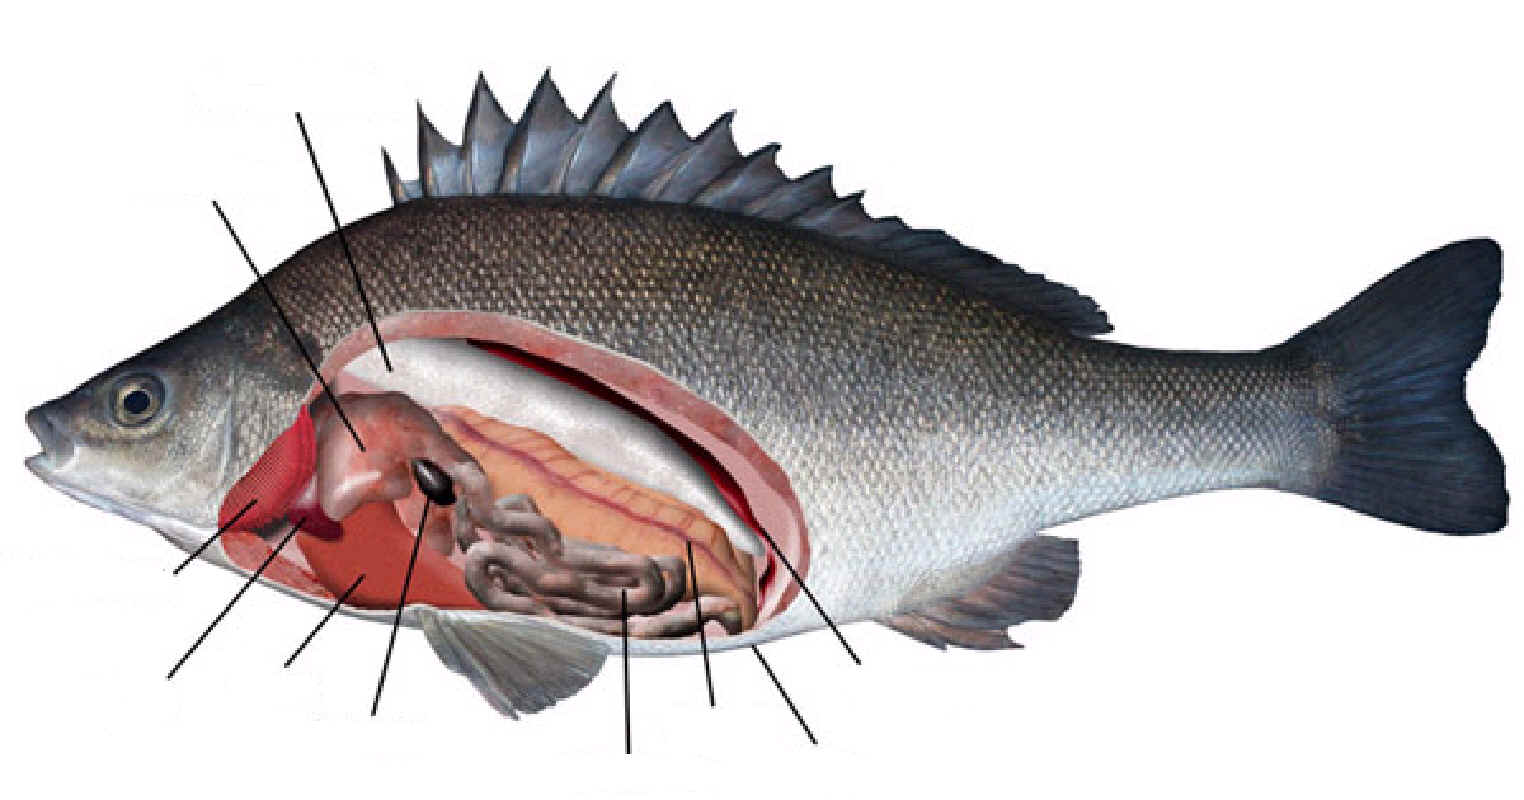 Fish Internal Organs Diagram http://punchinn.com/24/fish-internal-diagram